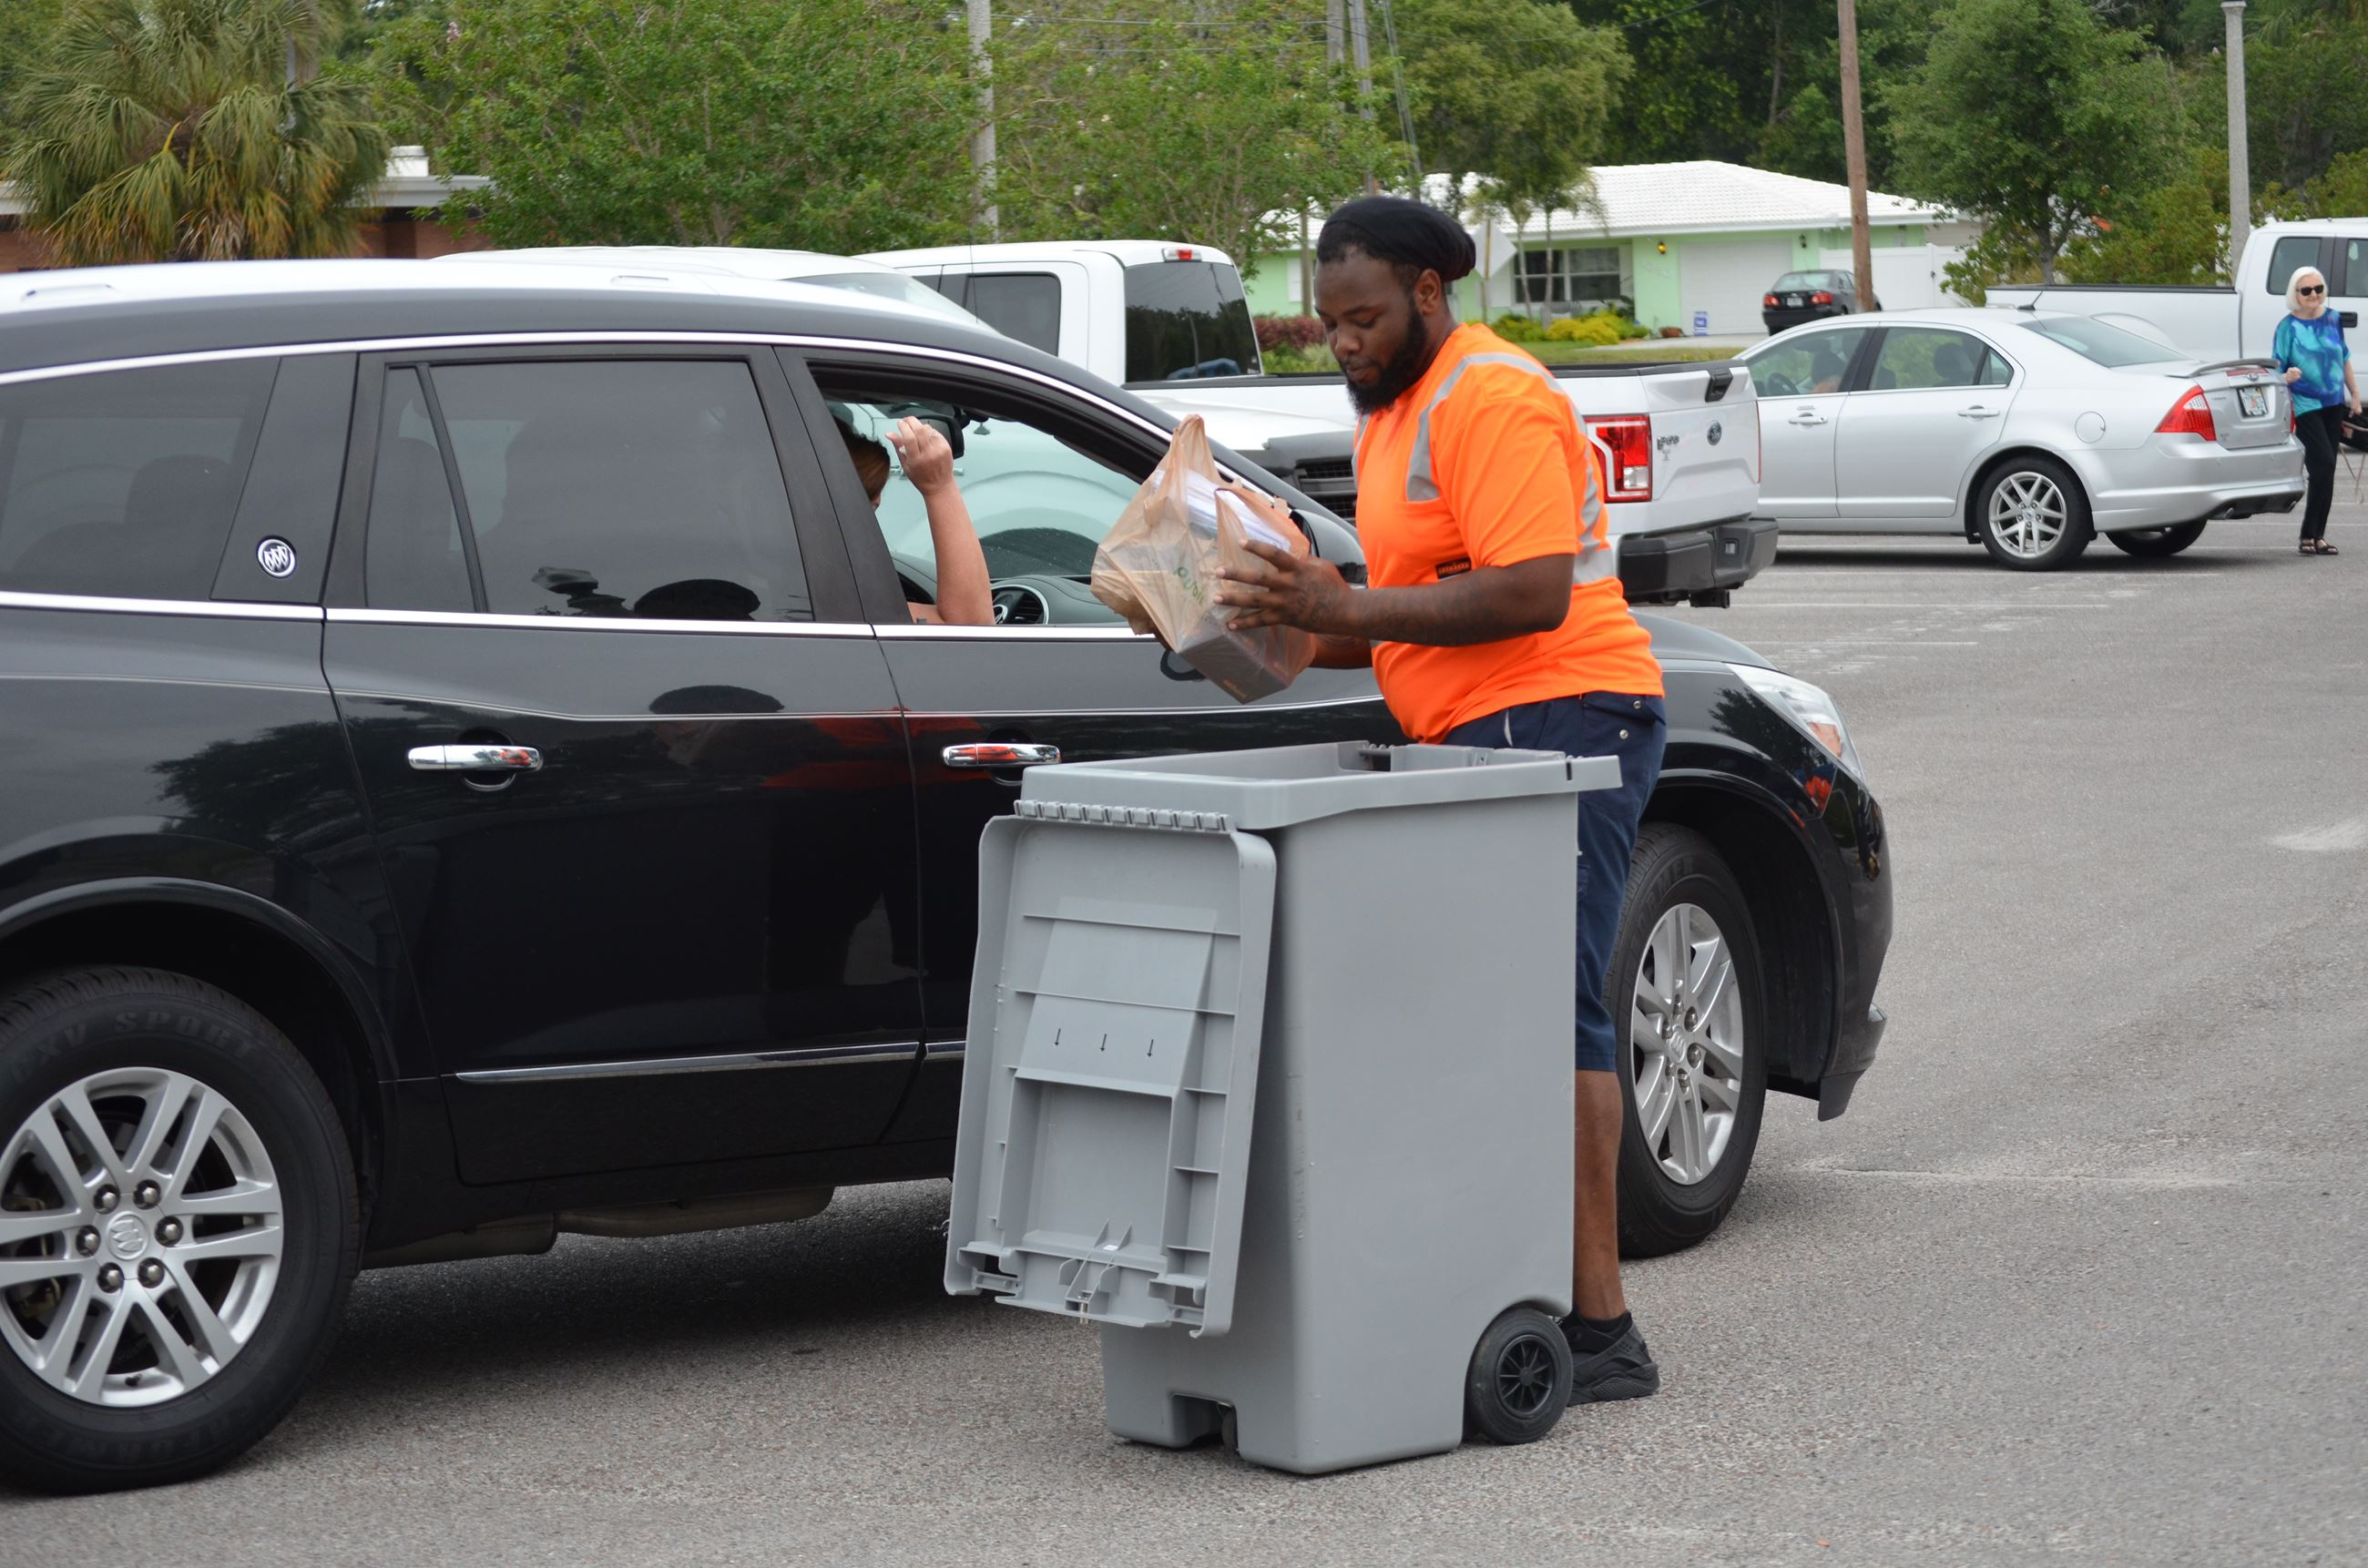 A Solid Waste Department employee collects papers from a car at a shredding event.